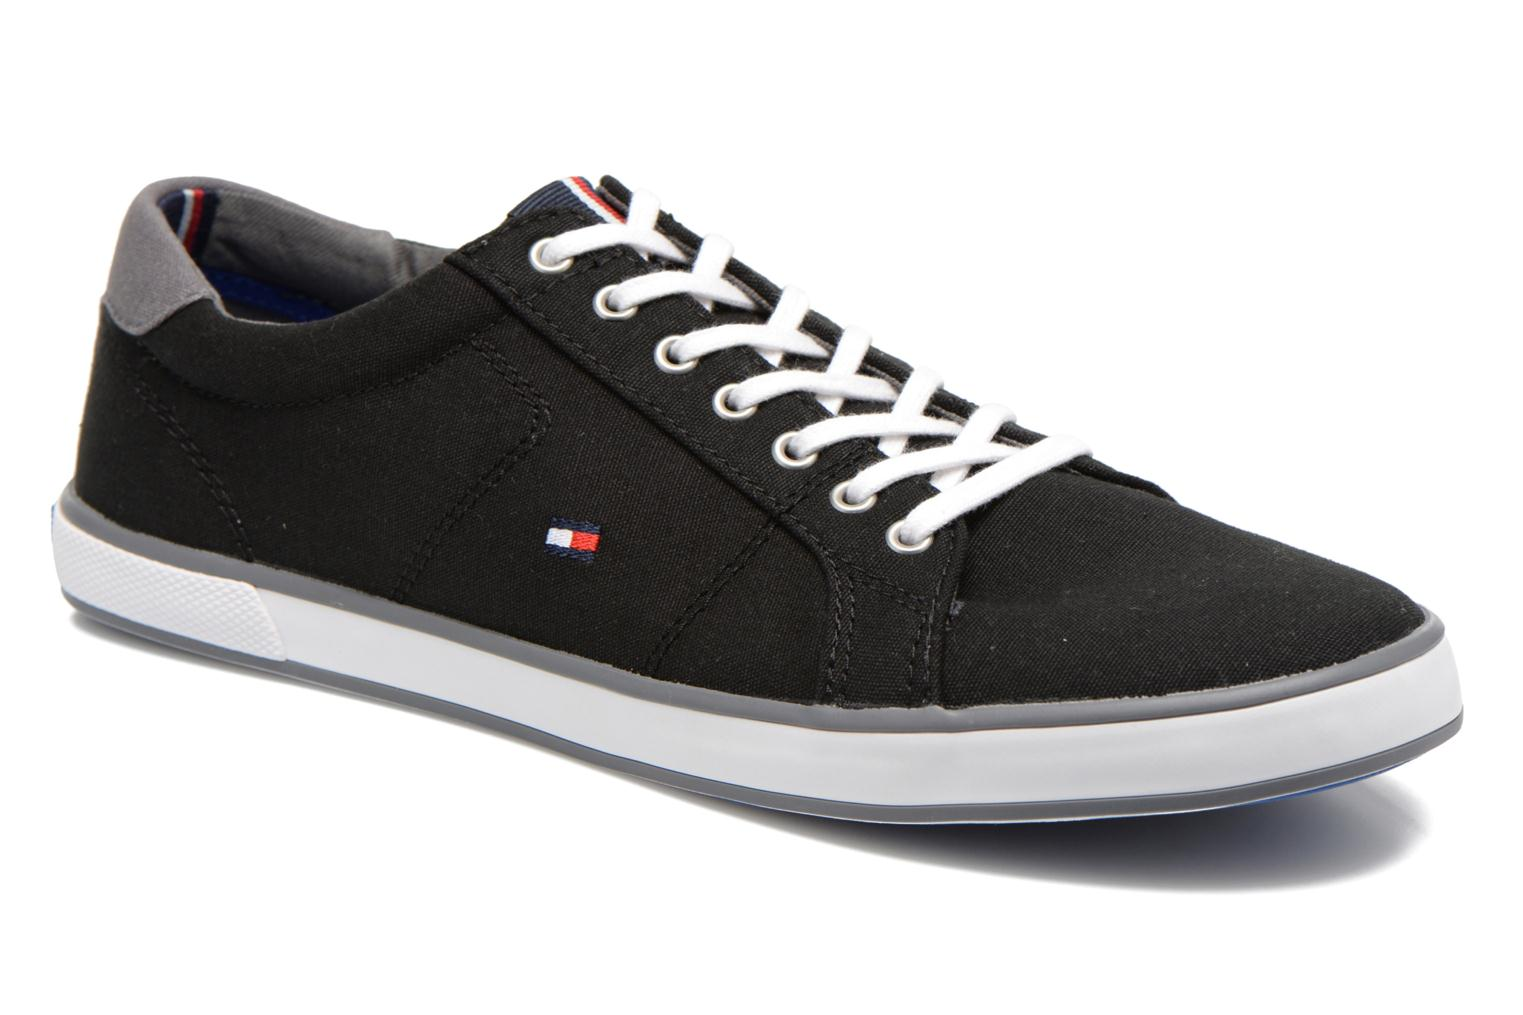 sneakers-harlow-1d-by-tommy-hilfiger